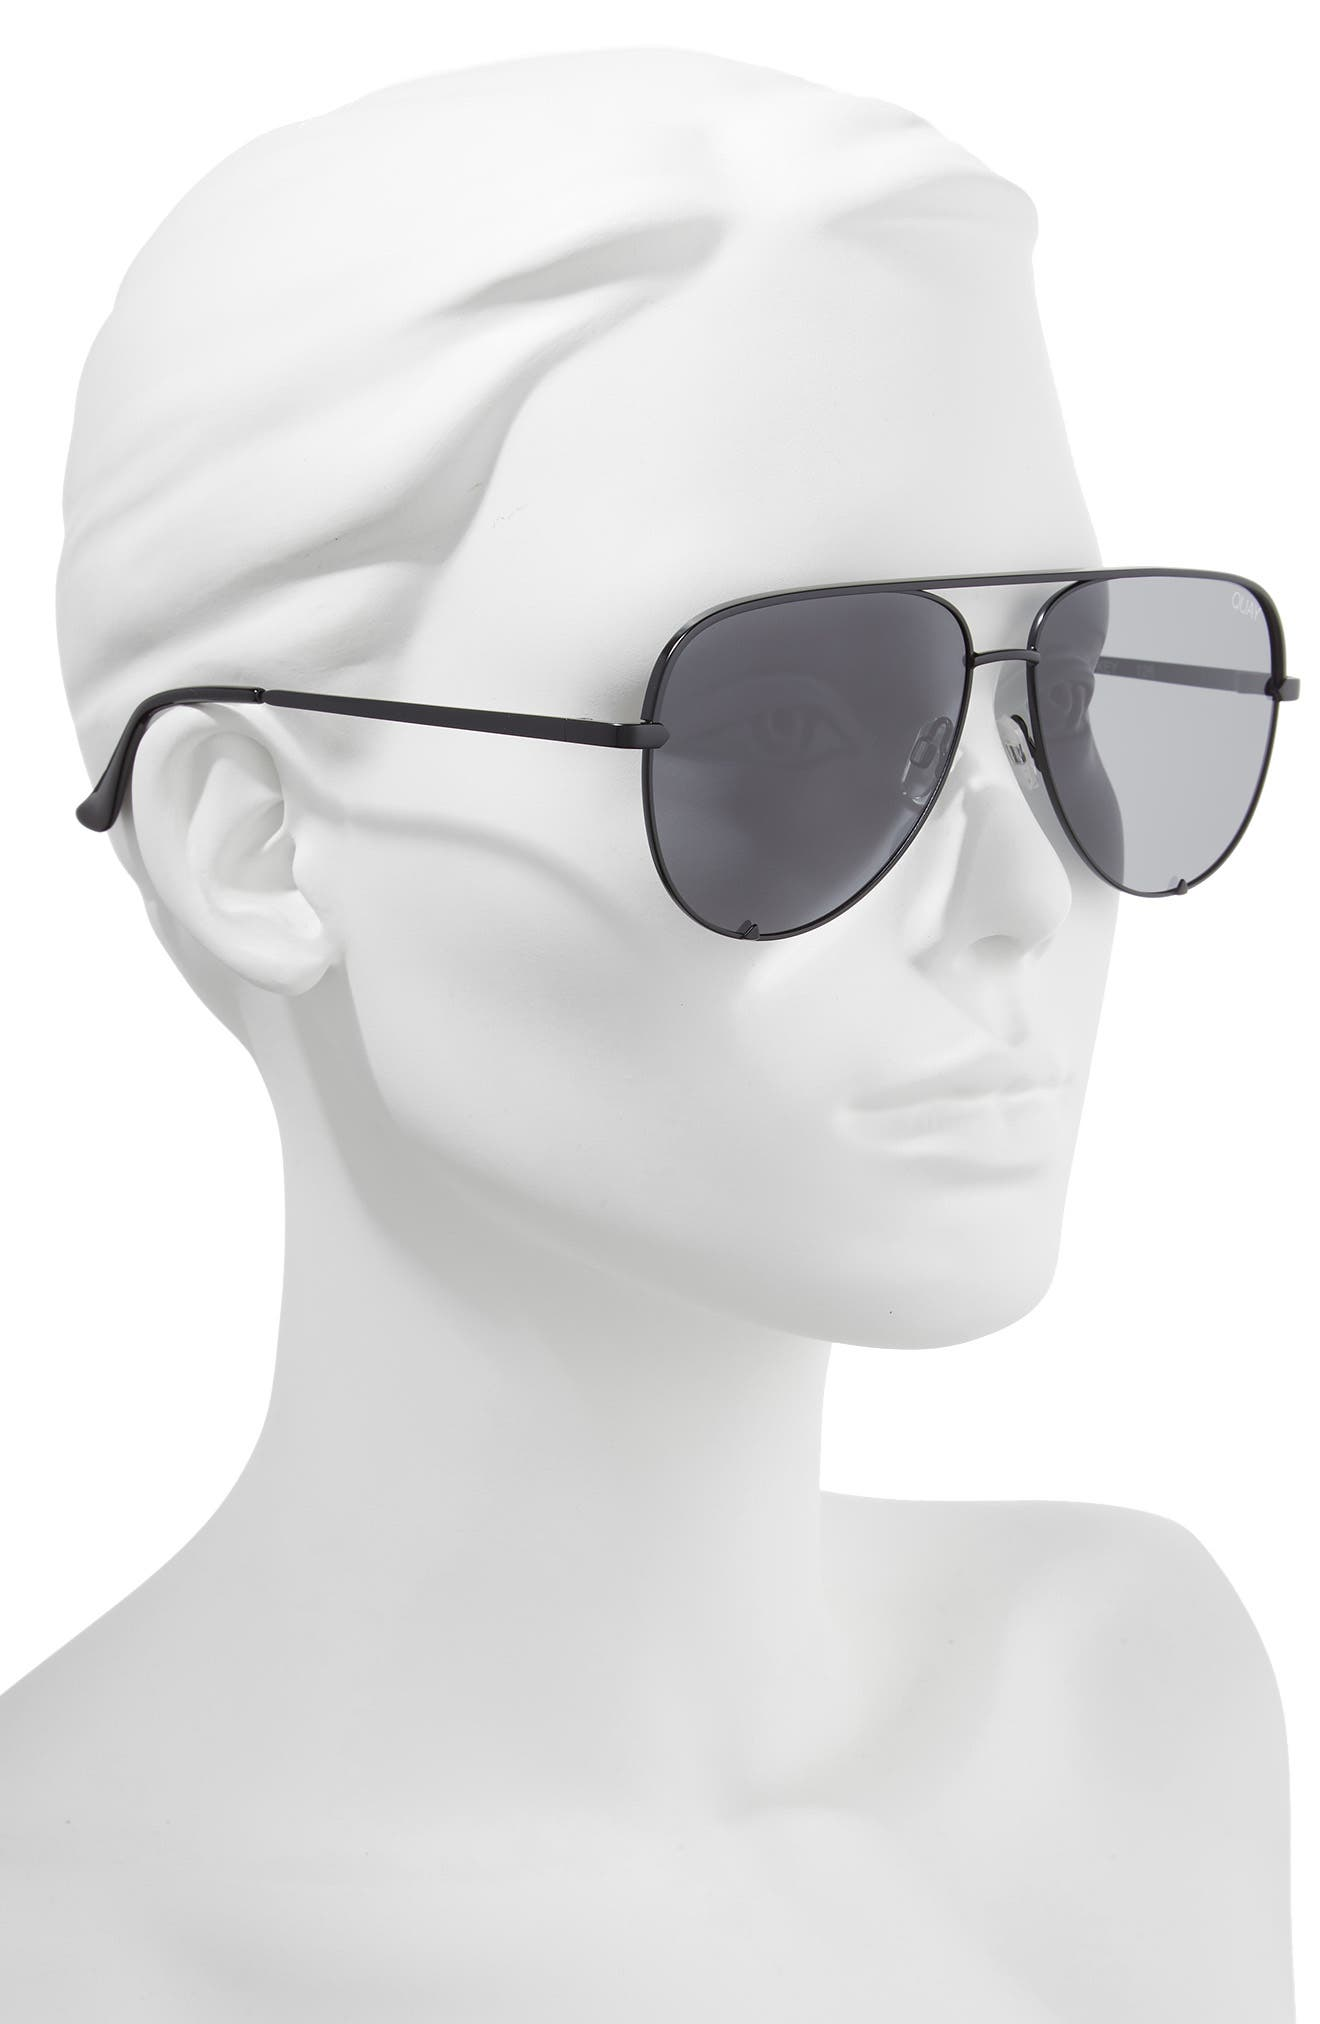 x Desi Perkins High Key 62mm Aviator Sunglasses,                             Alternate thumbnail 3, color,                             Black/ Smoke